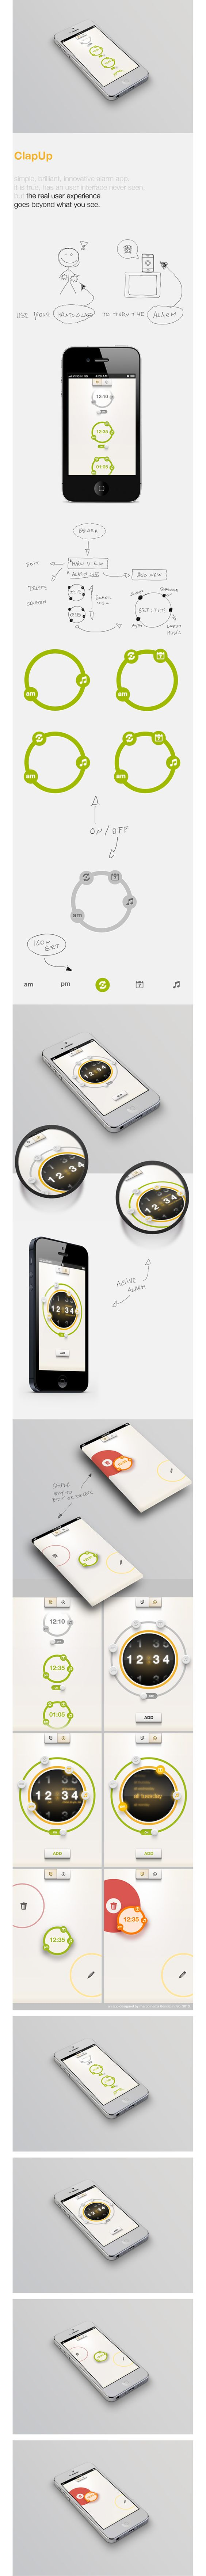 ClapUp - iOS simple and brillant alarm's App by Marco Nenzi, via Behance *** ClapUp - iOS simple and brillant allarm's App, with an incredible user experience that goes beyond what you see.